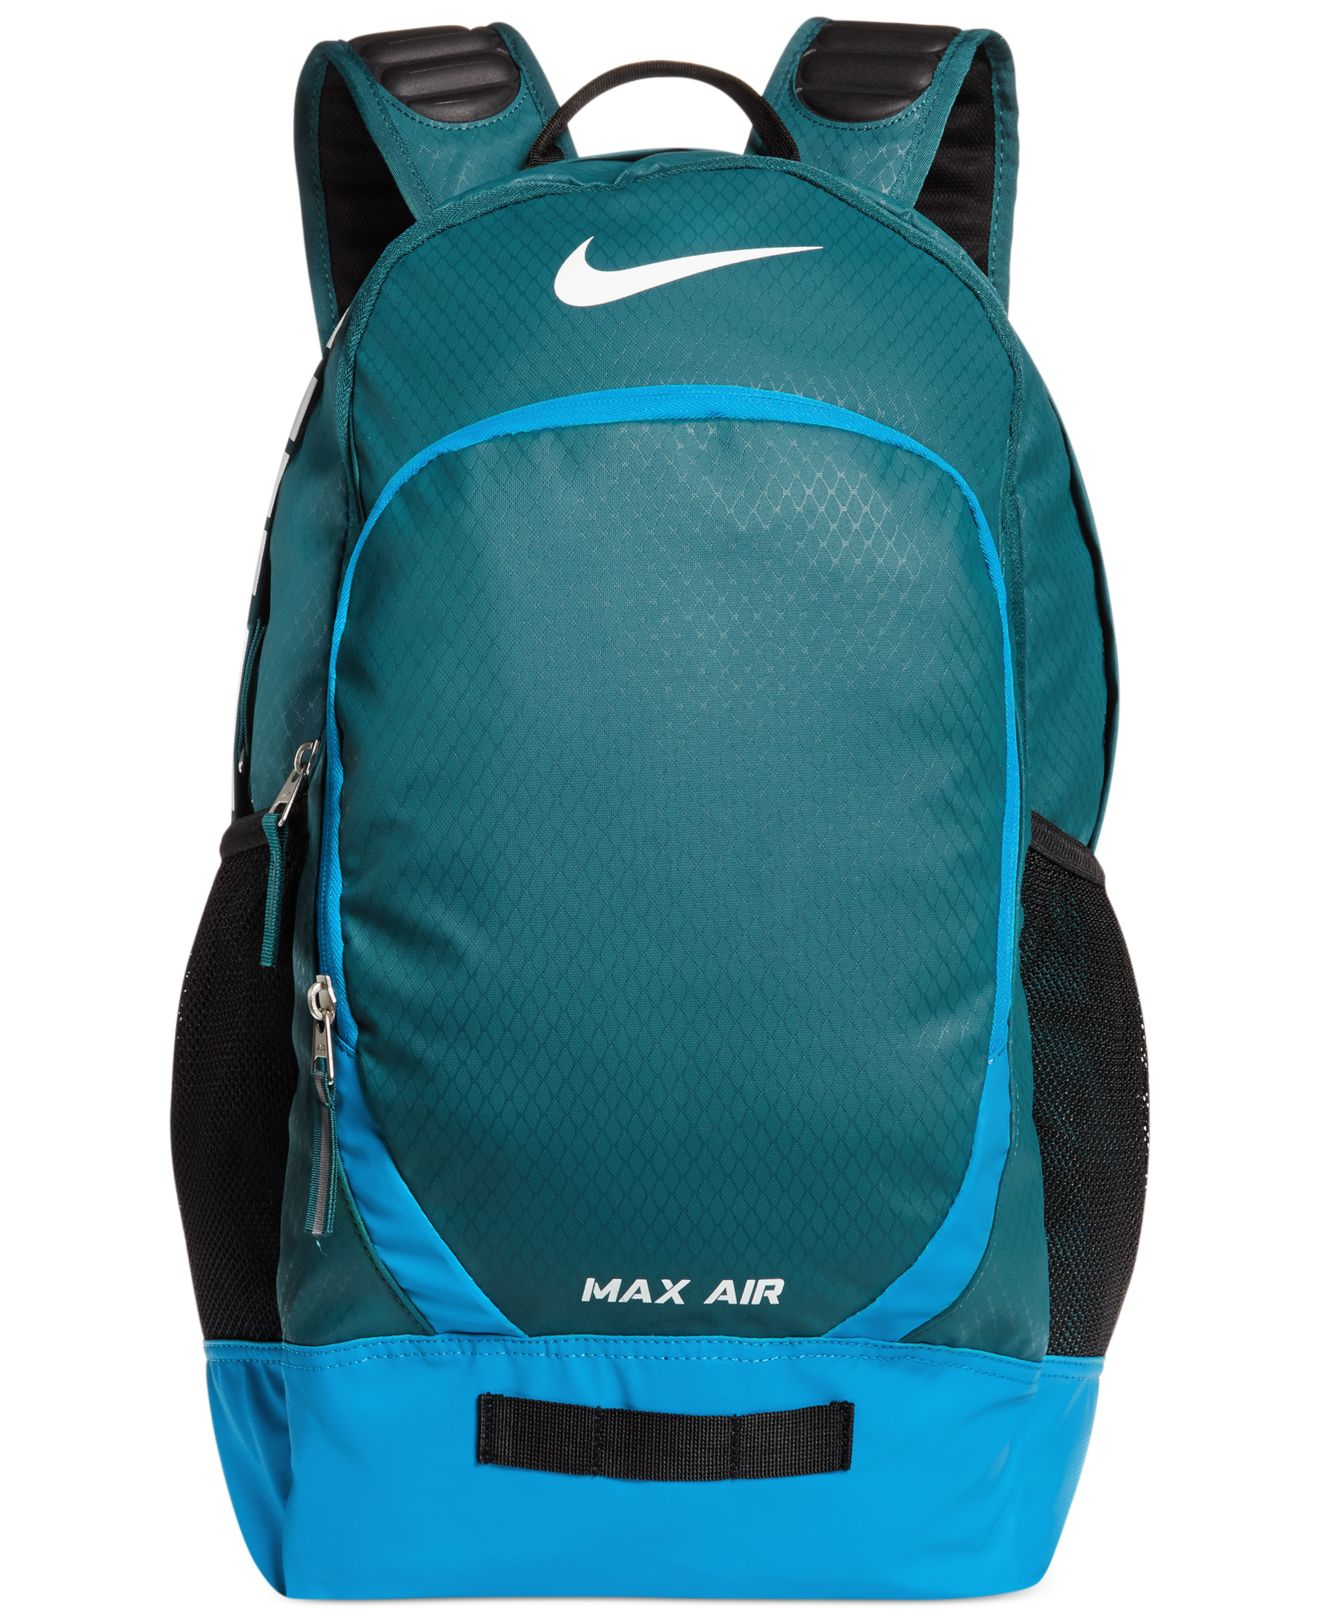 c8a5880796bd Lyst - Nike Max Air Team Training Large Backpack in Blue for Men